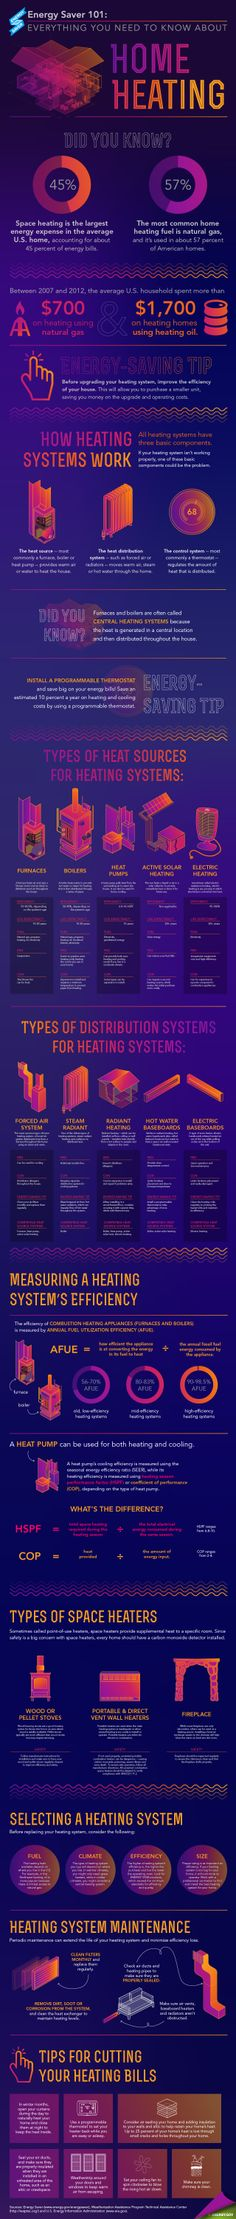 Heating and Cooling Explained...Energy Saver 101 Infographic: Home Heating | Department of Energy